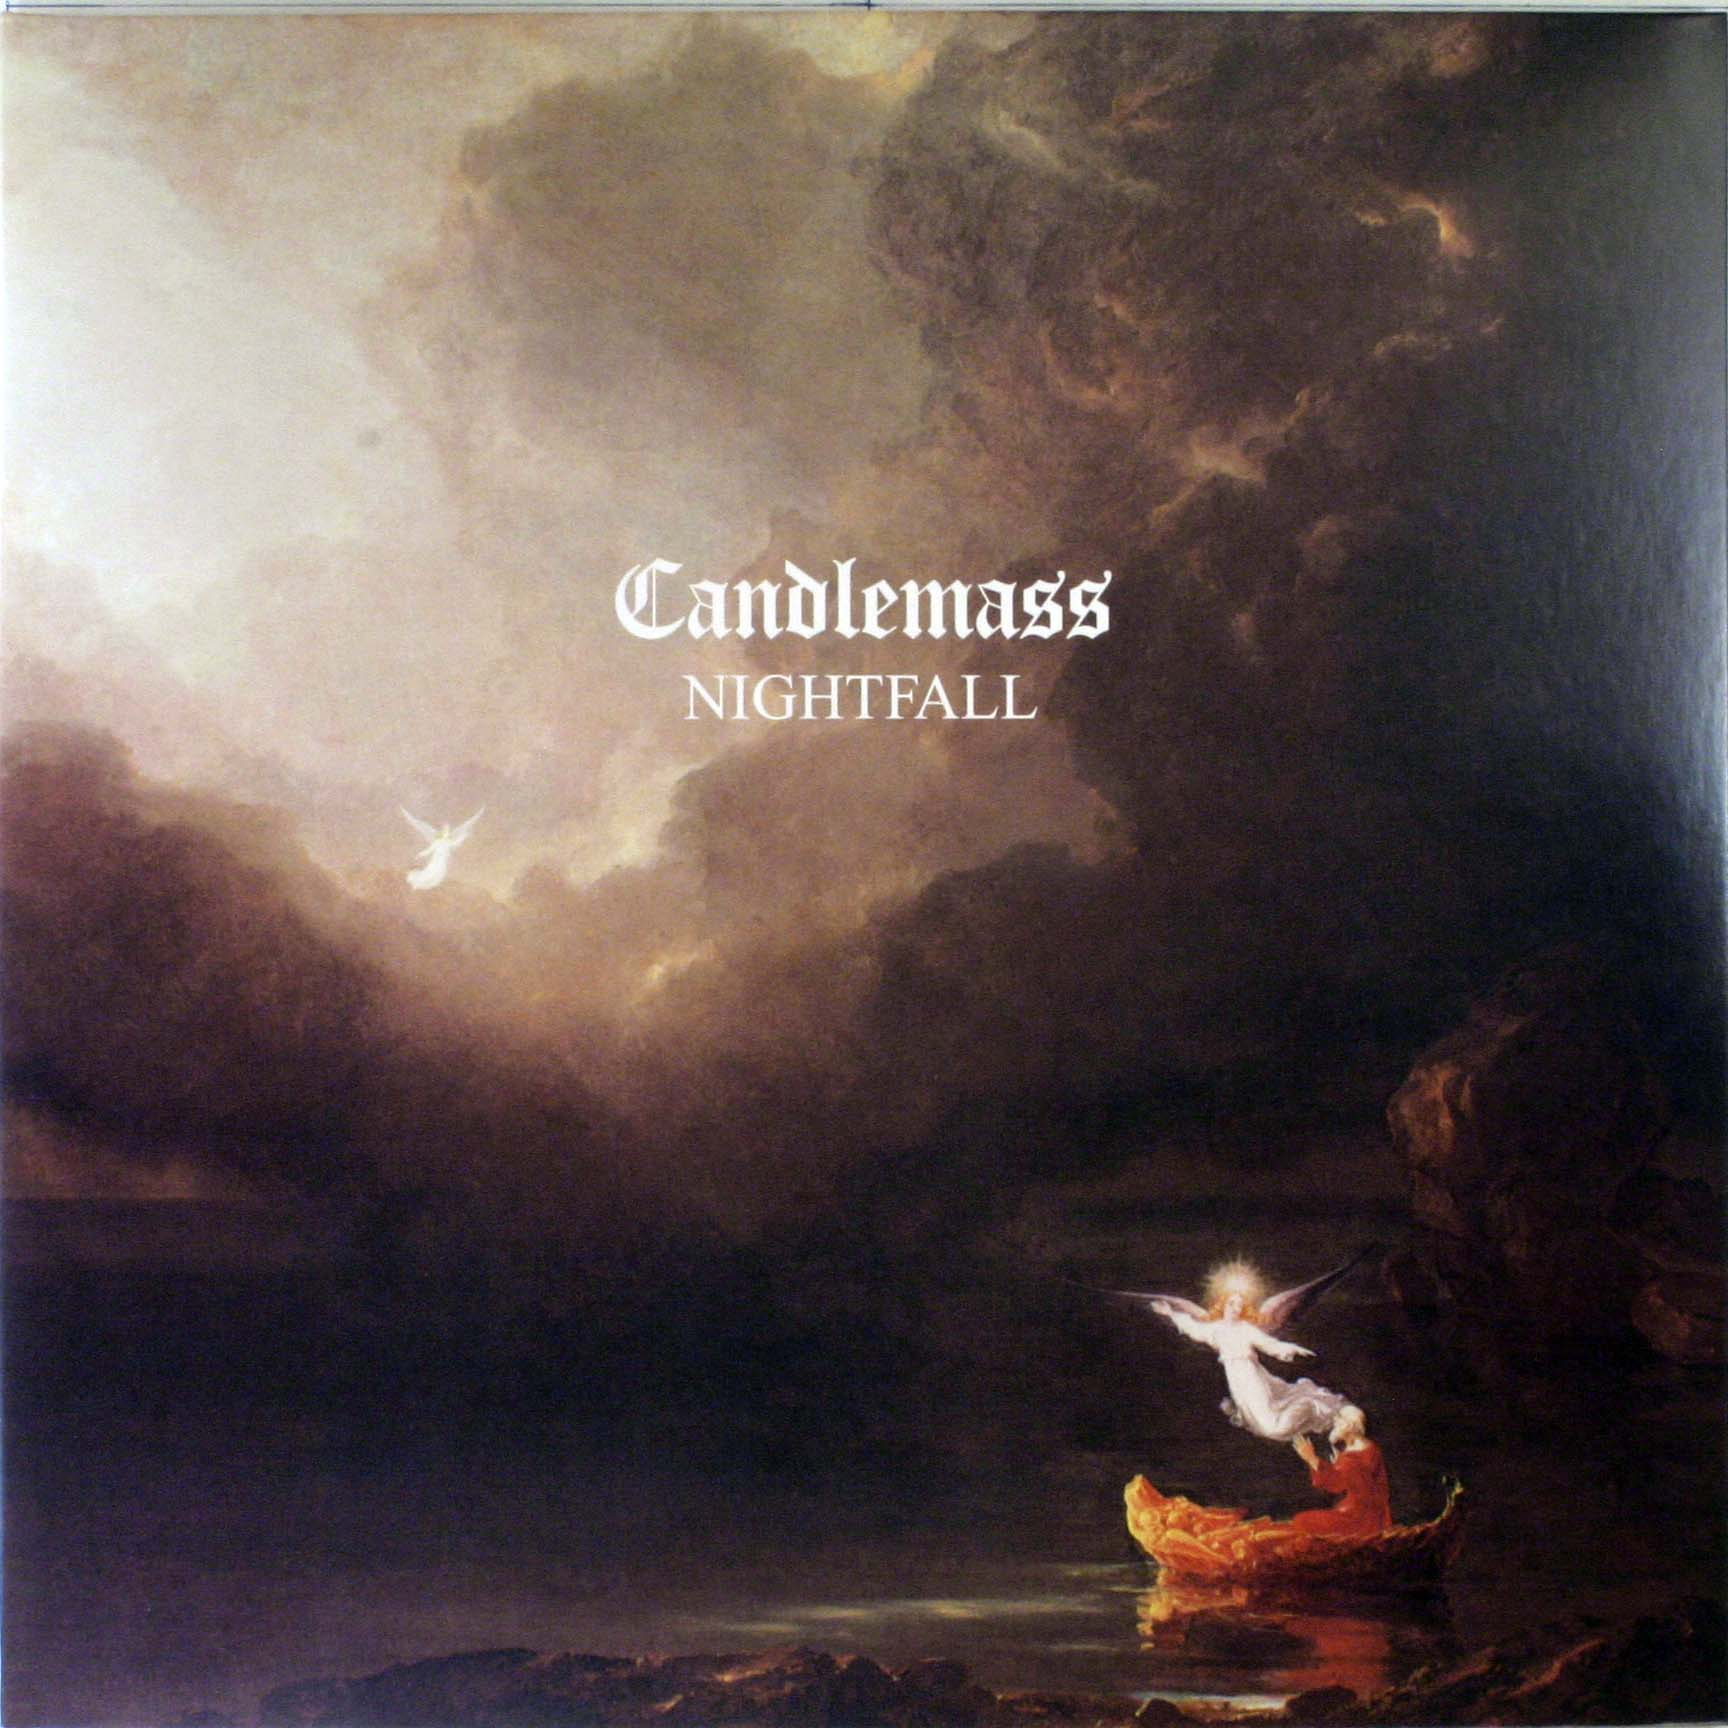 Candlemass Nightfall Records Vinyl And Cds Hard To Find